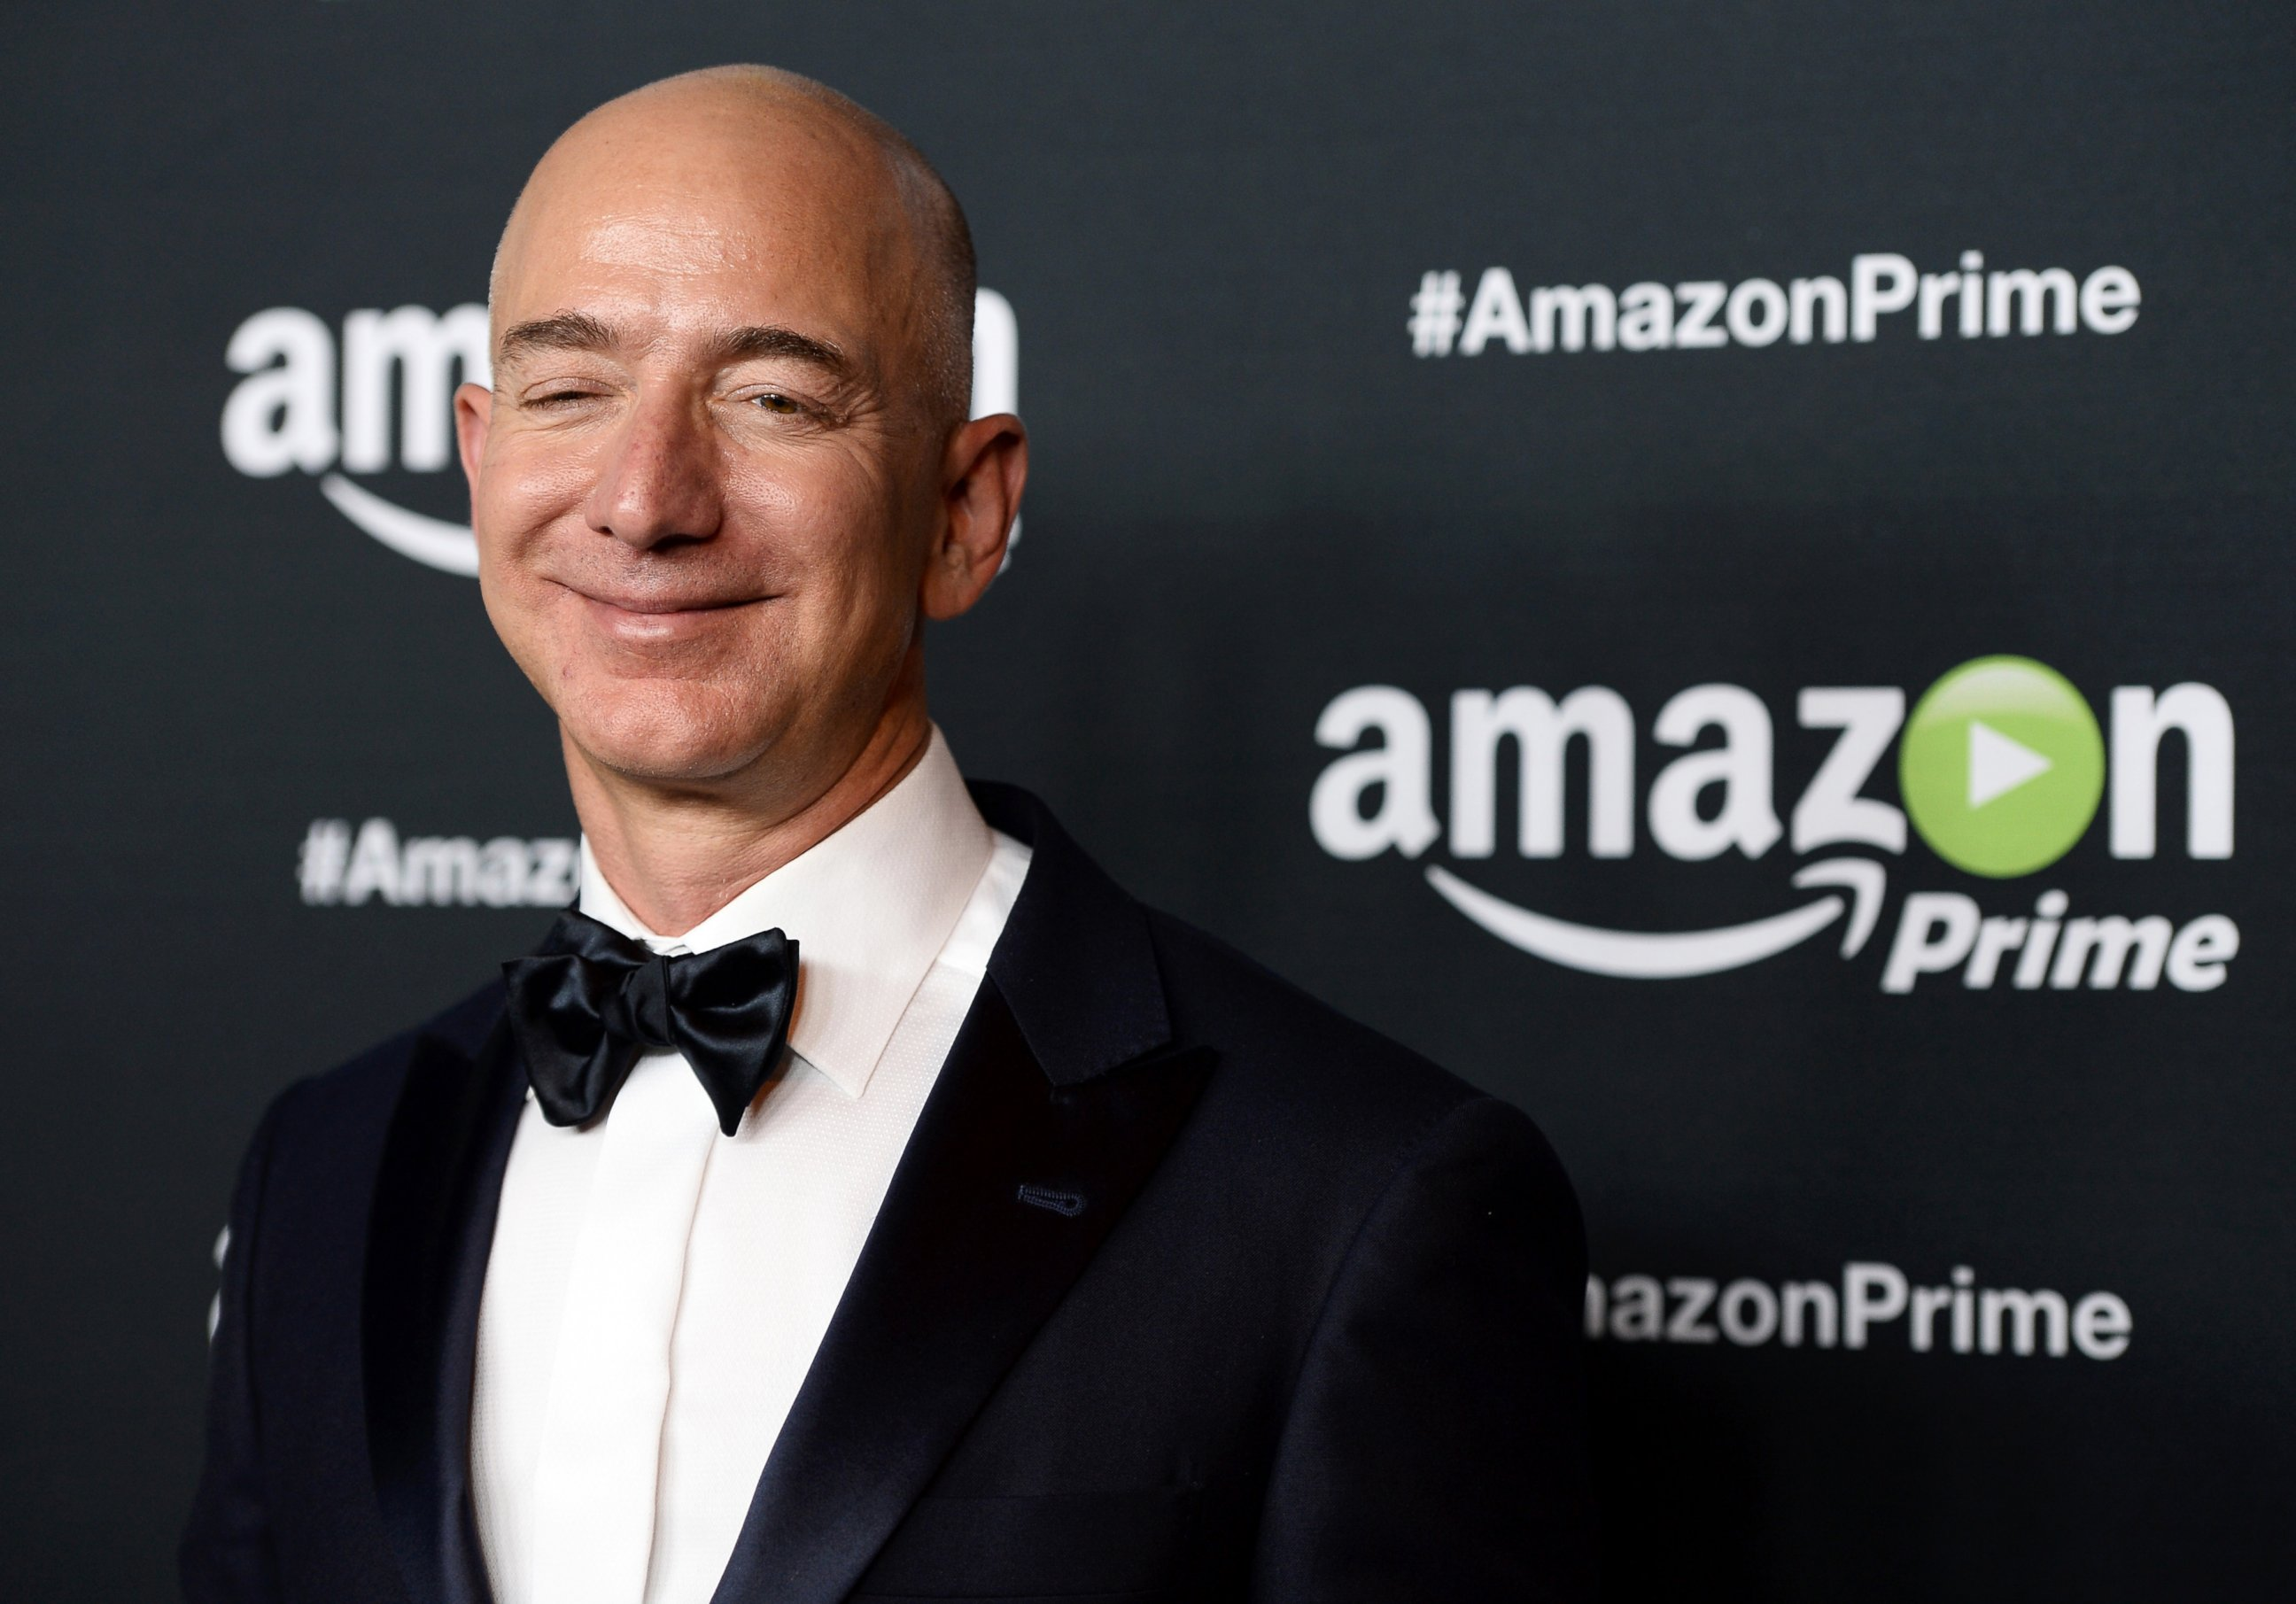 amazon ceo and founder Simone brunozzi founder, ceo at fabrica inc location san francisco bay area industry  from 2008 to 2014 i have worked for amazon web services (aws).